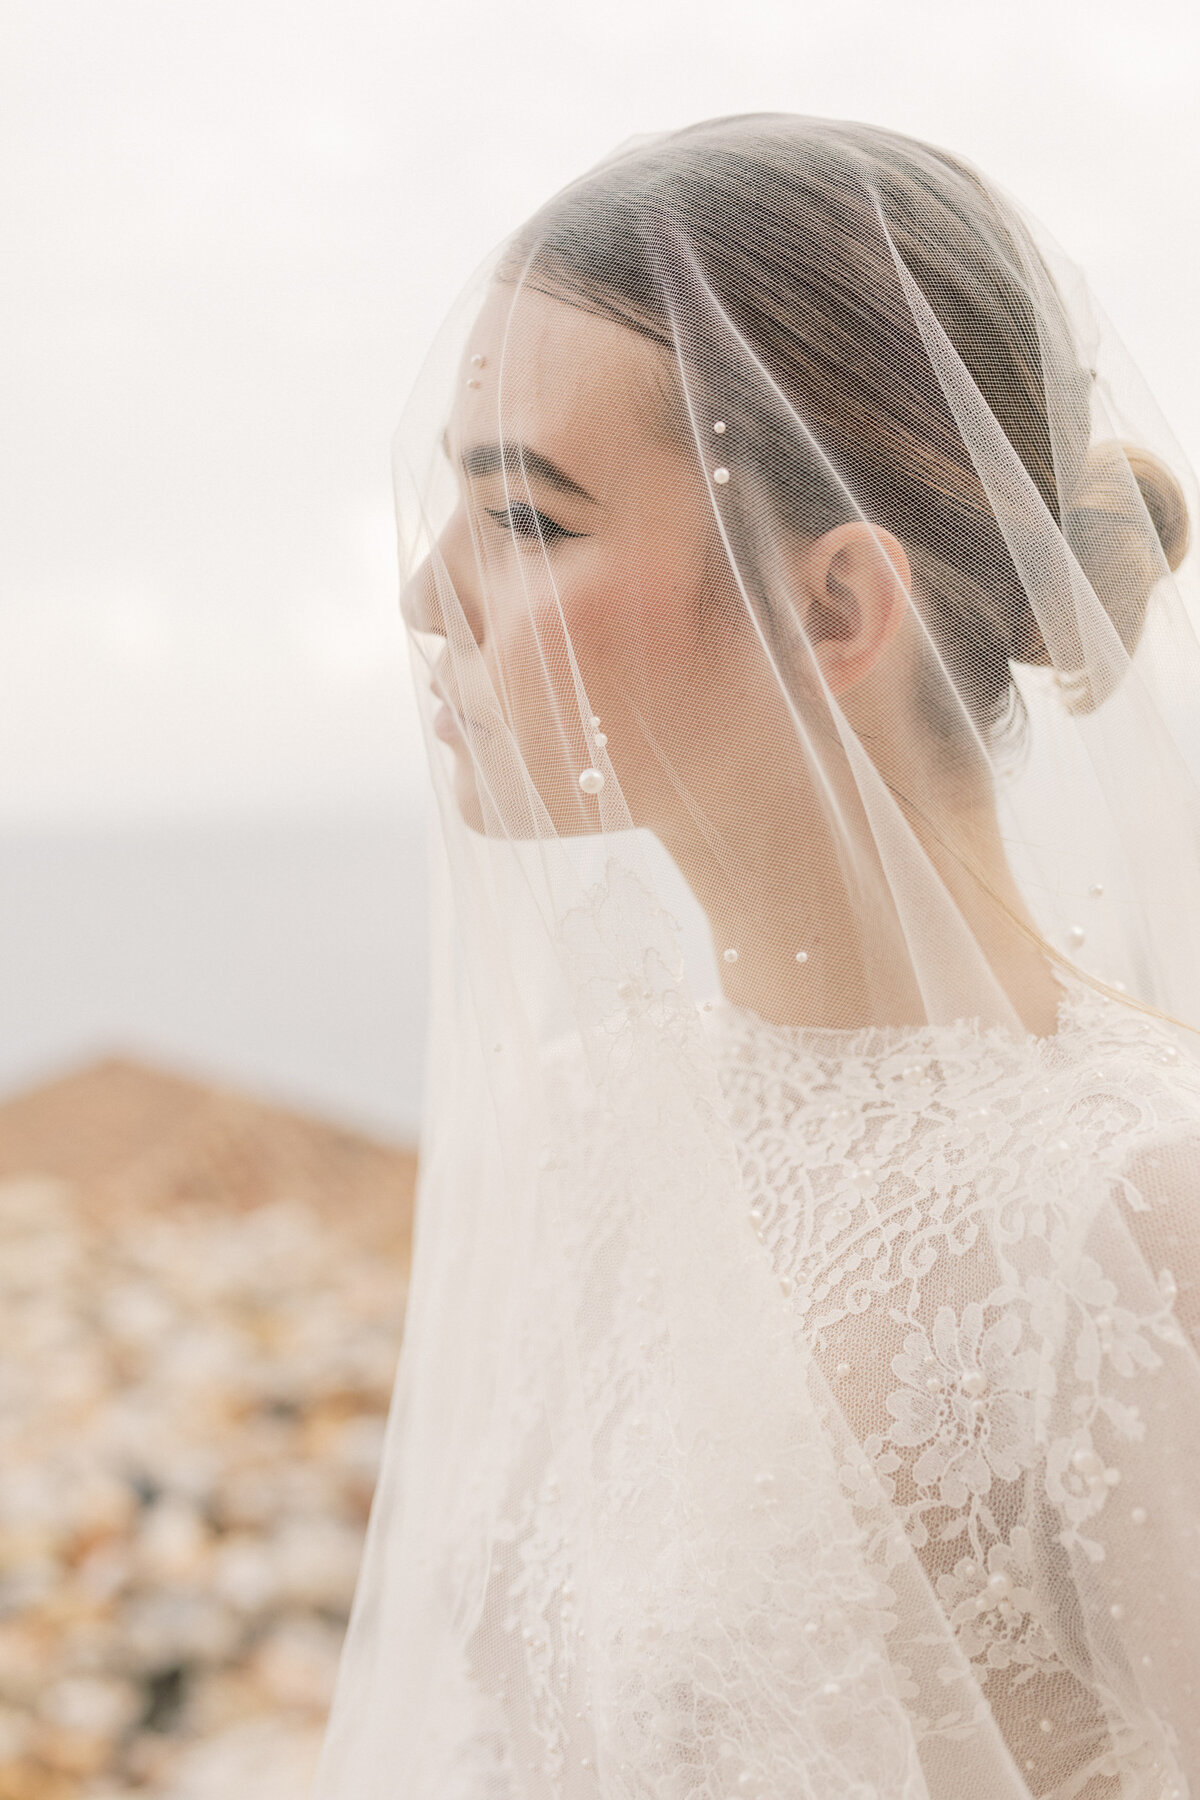 Bridal Portrait Editorial Photoshoot in Greece 8